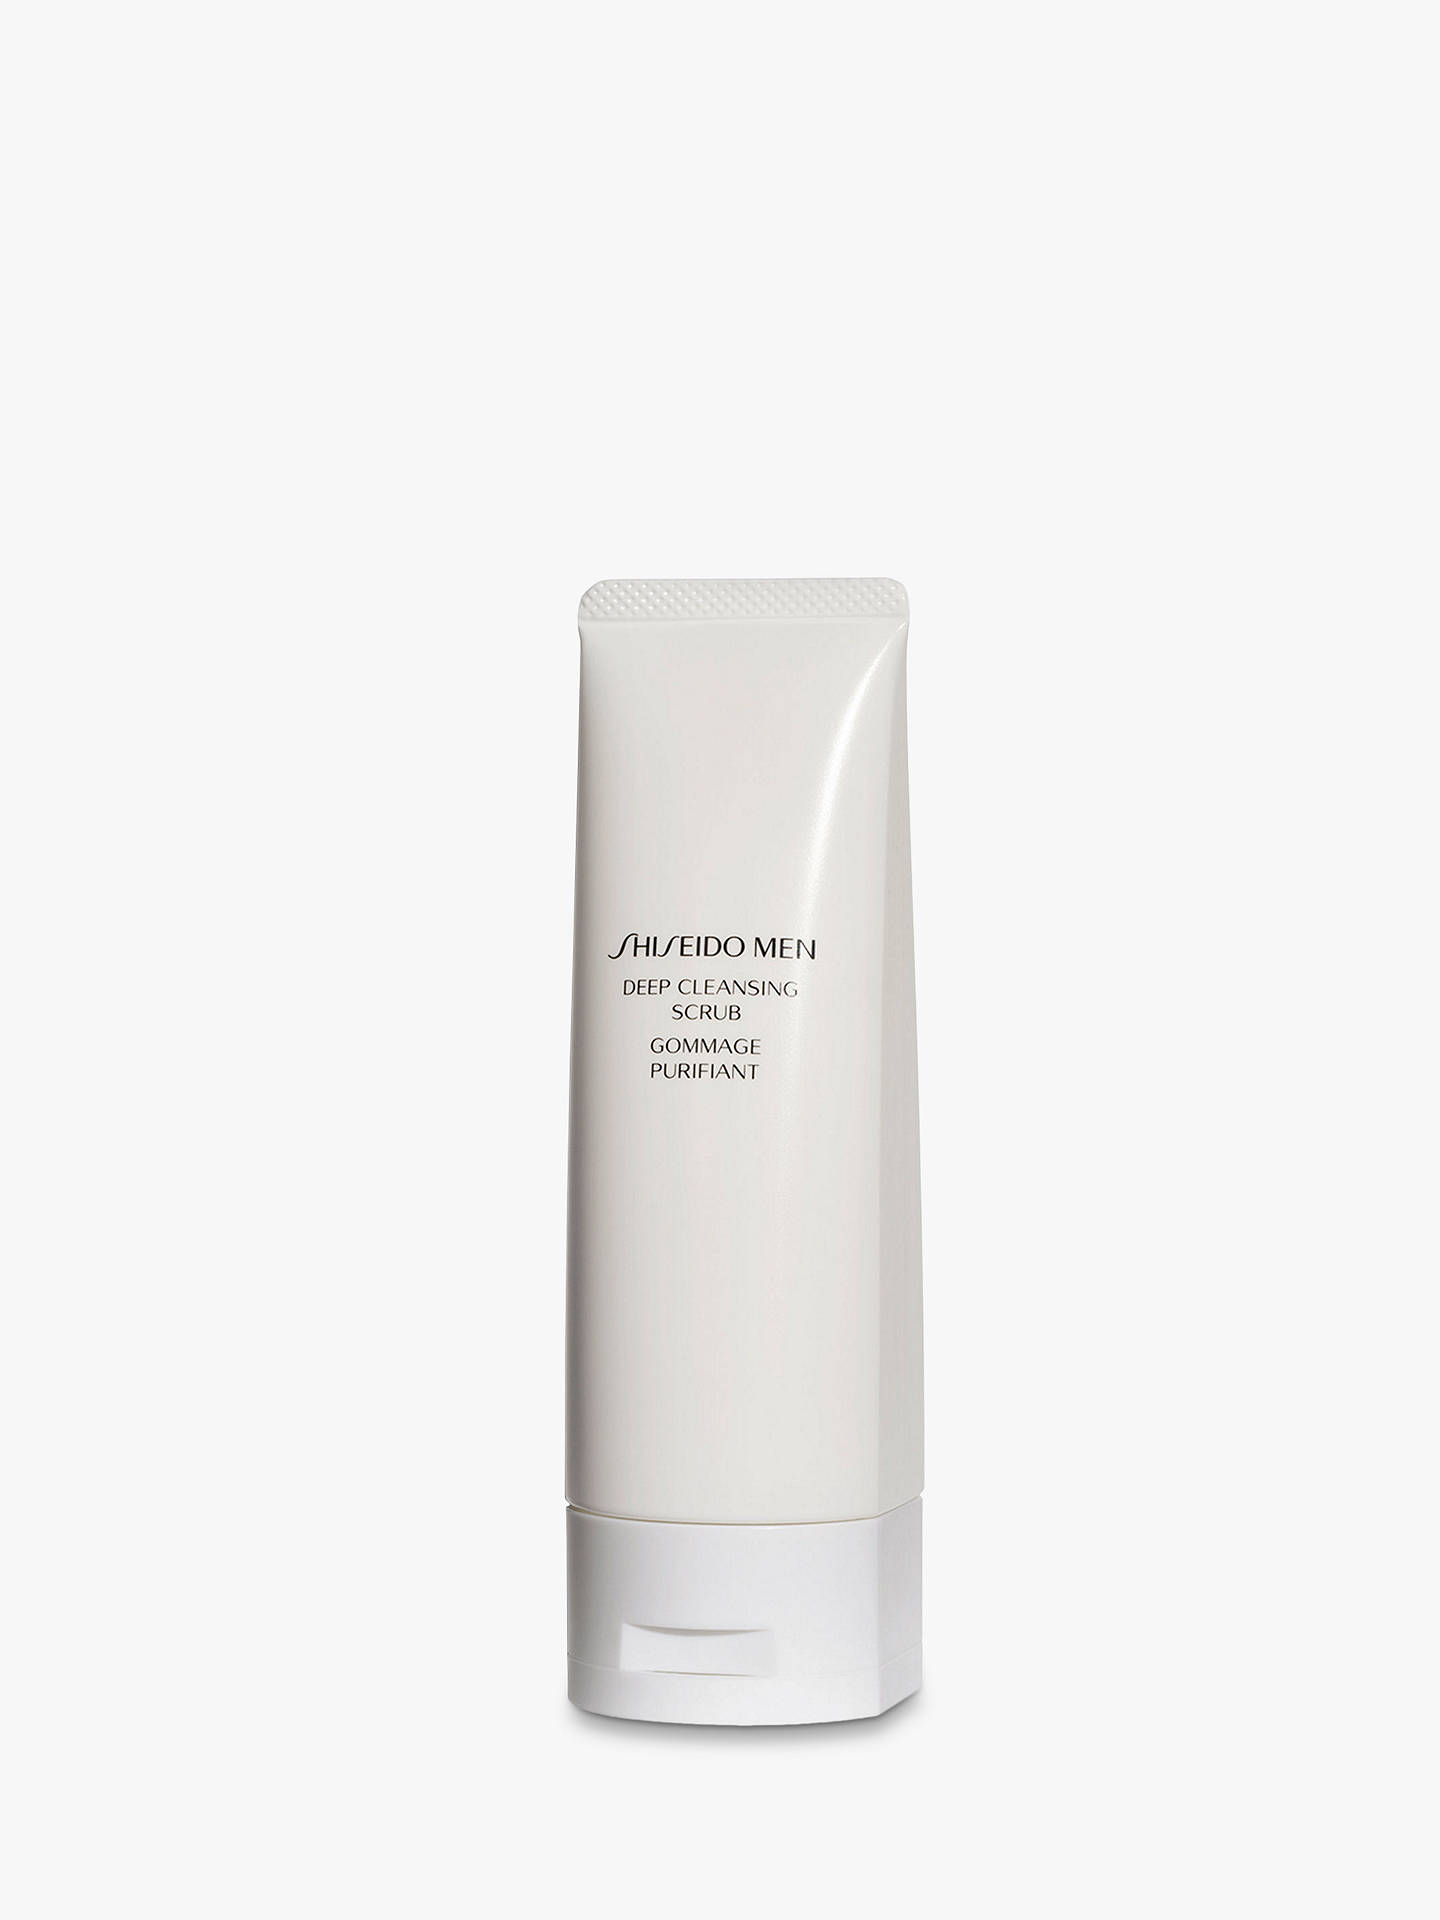 Buy Shiseido Men Deep Cleansing Scrub, 125ml Online at johnlewis.com